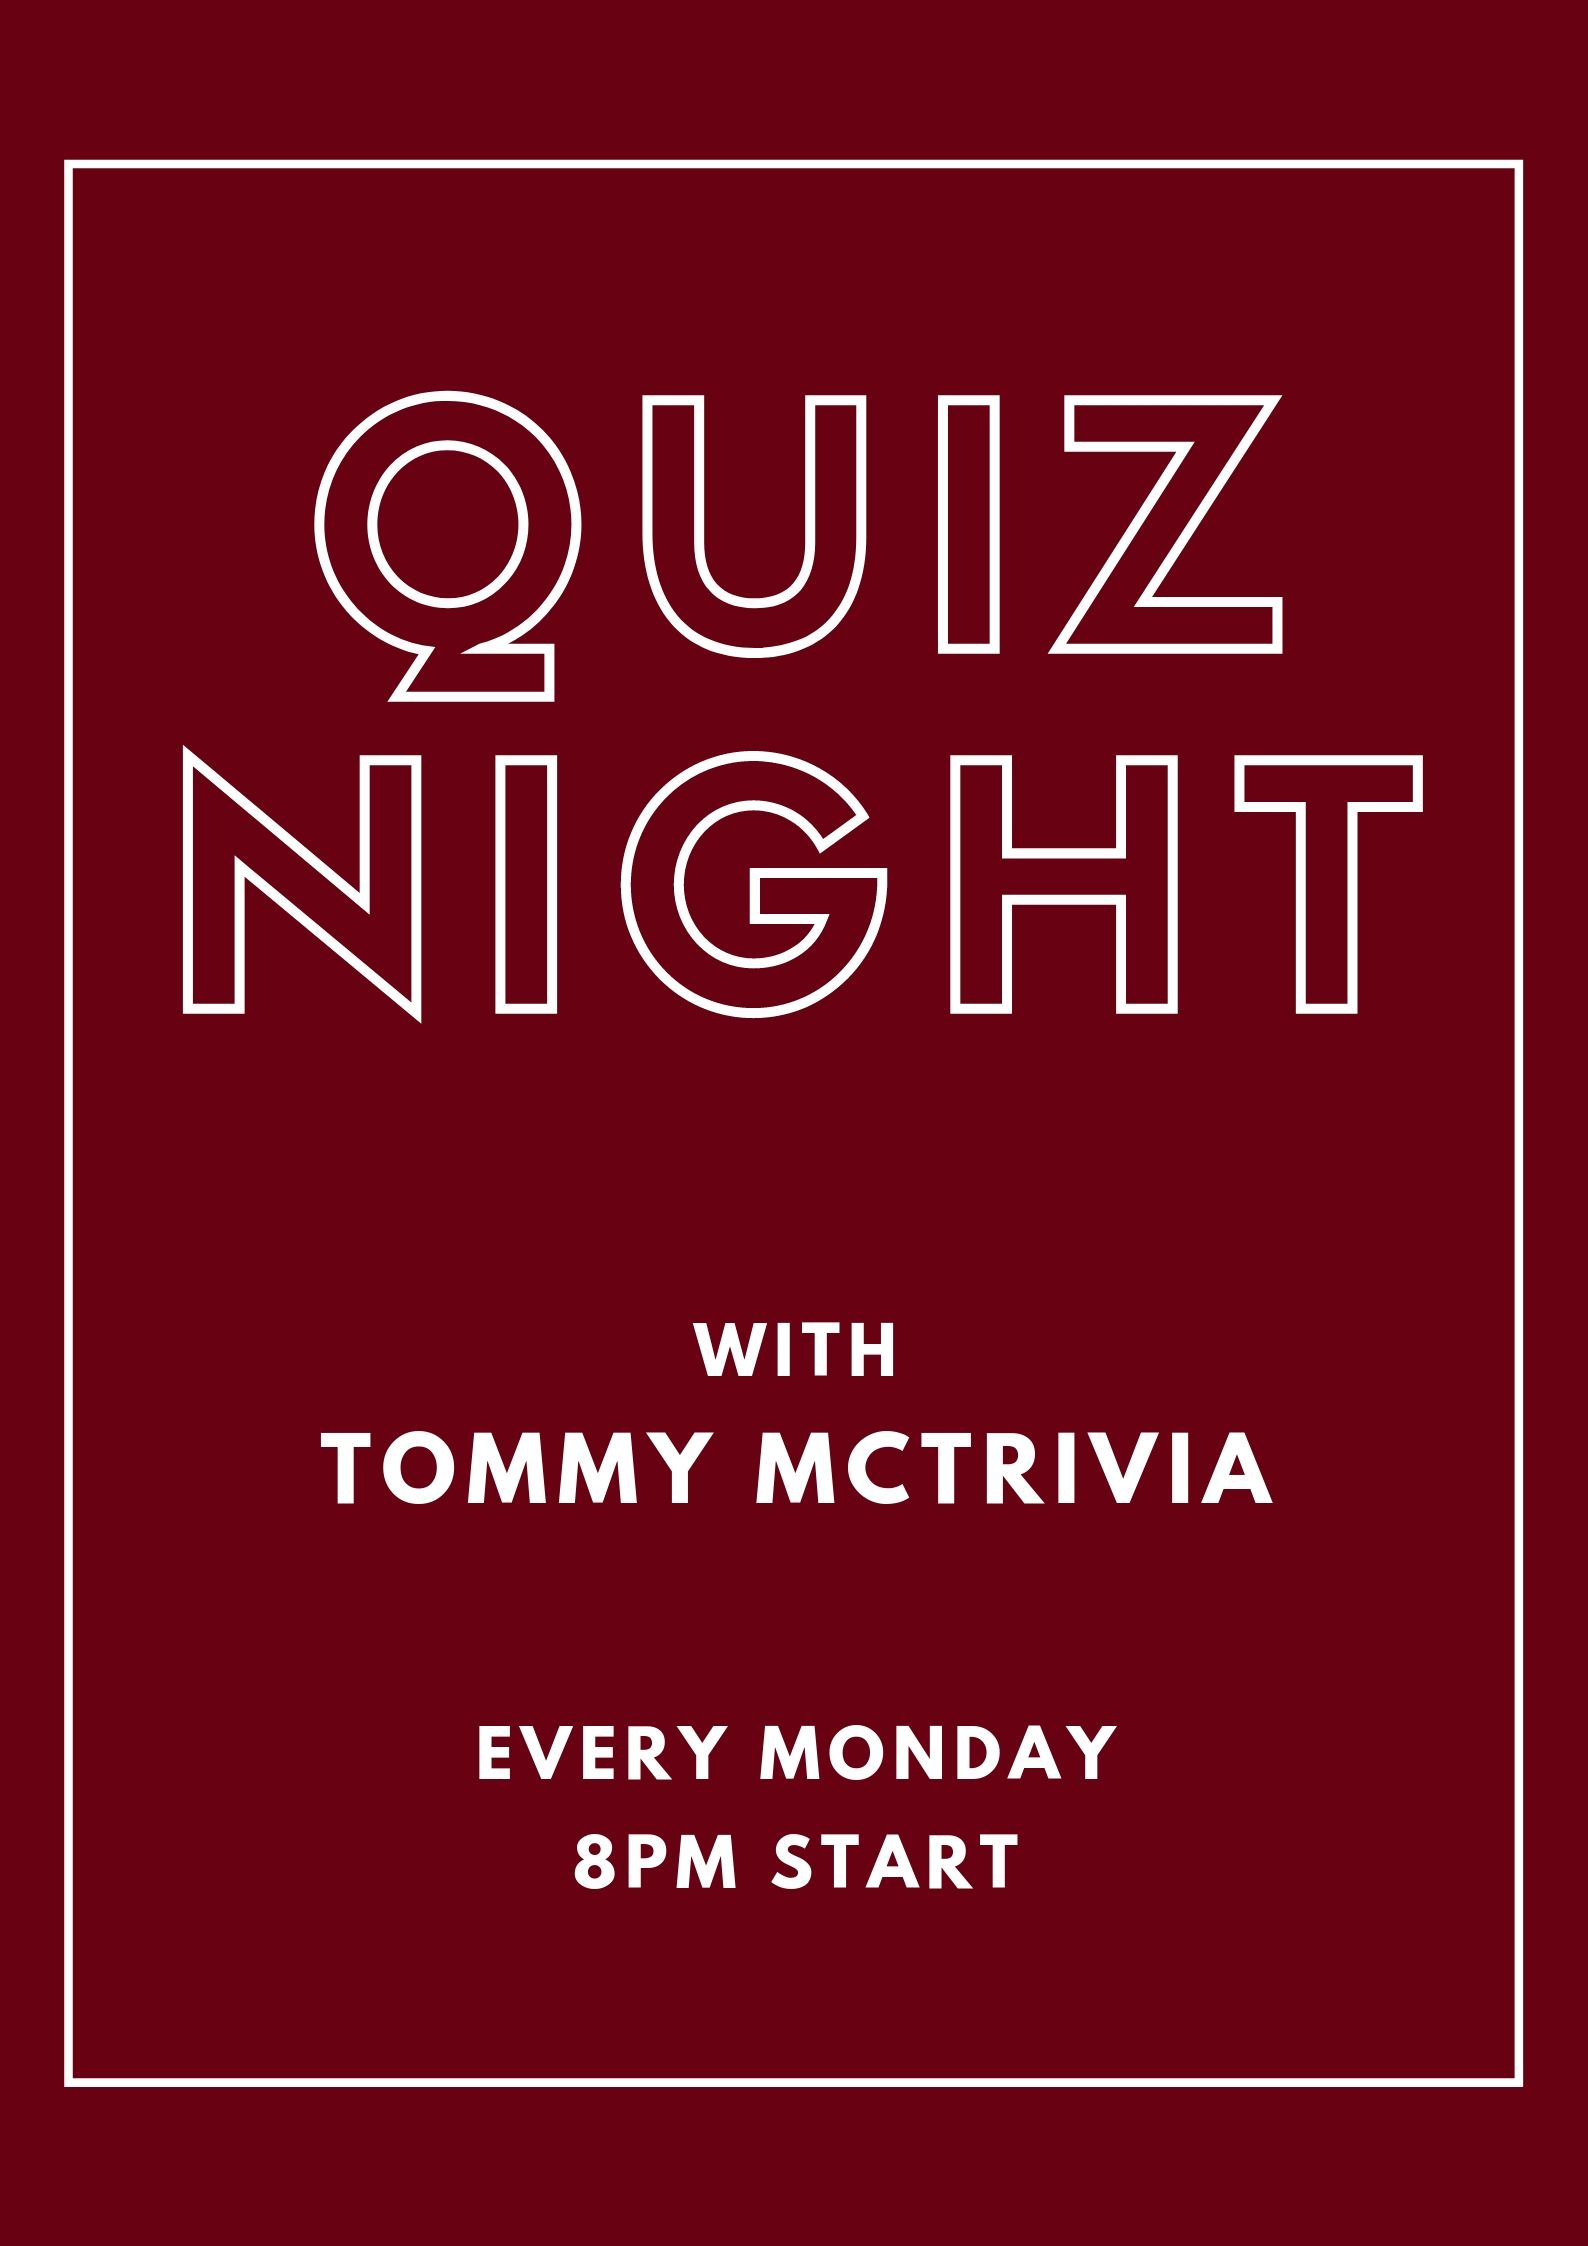 WEEKLY QUIZ NIGHT W/ TOMMY MCTRIVIA